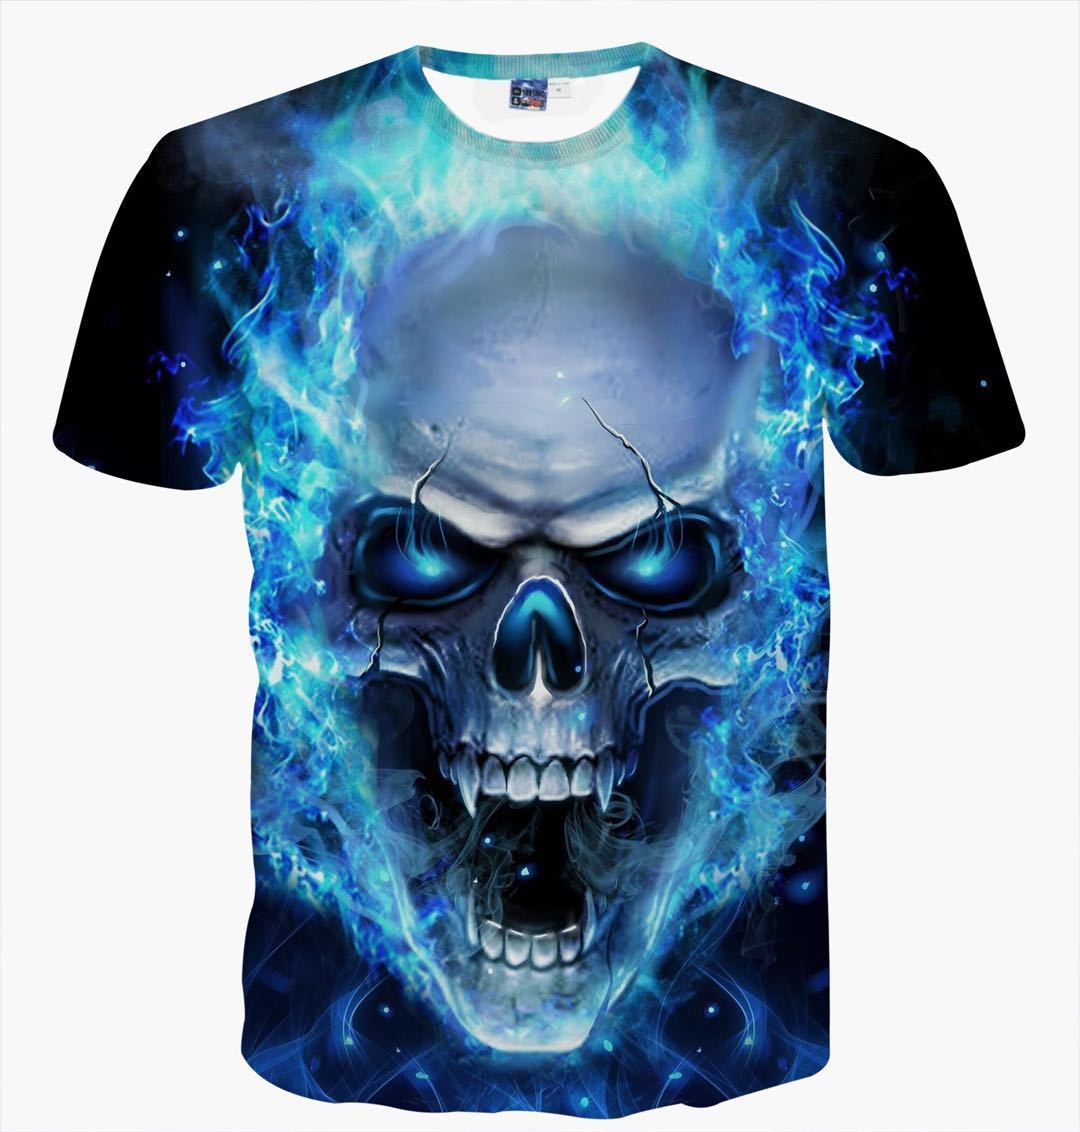 mens clothing t tee shirt homme shirts Women Men short sleeve Summer Hipster 3D skull man printed t-shirts Tees Tops tshirt